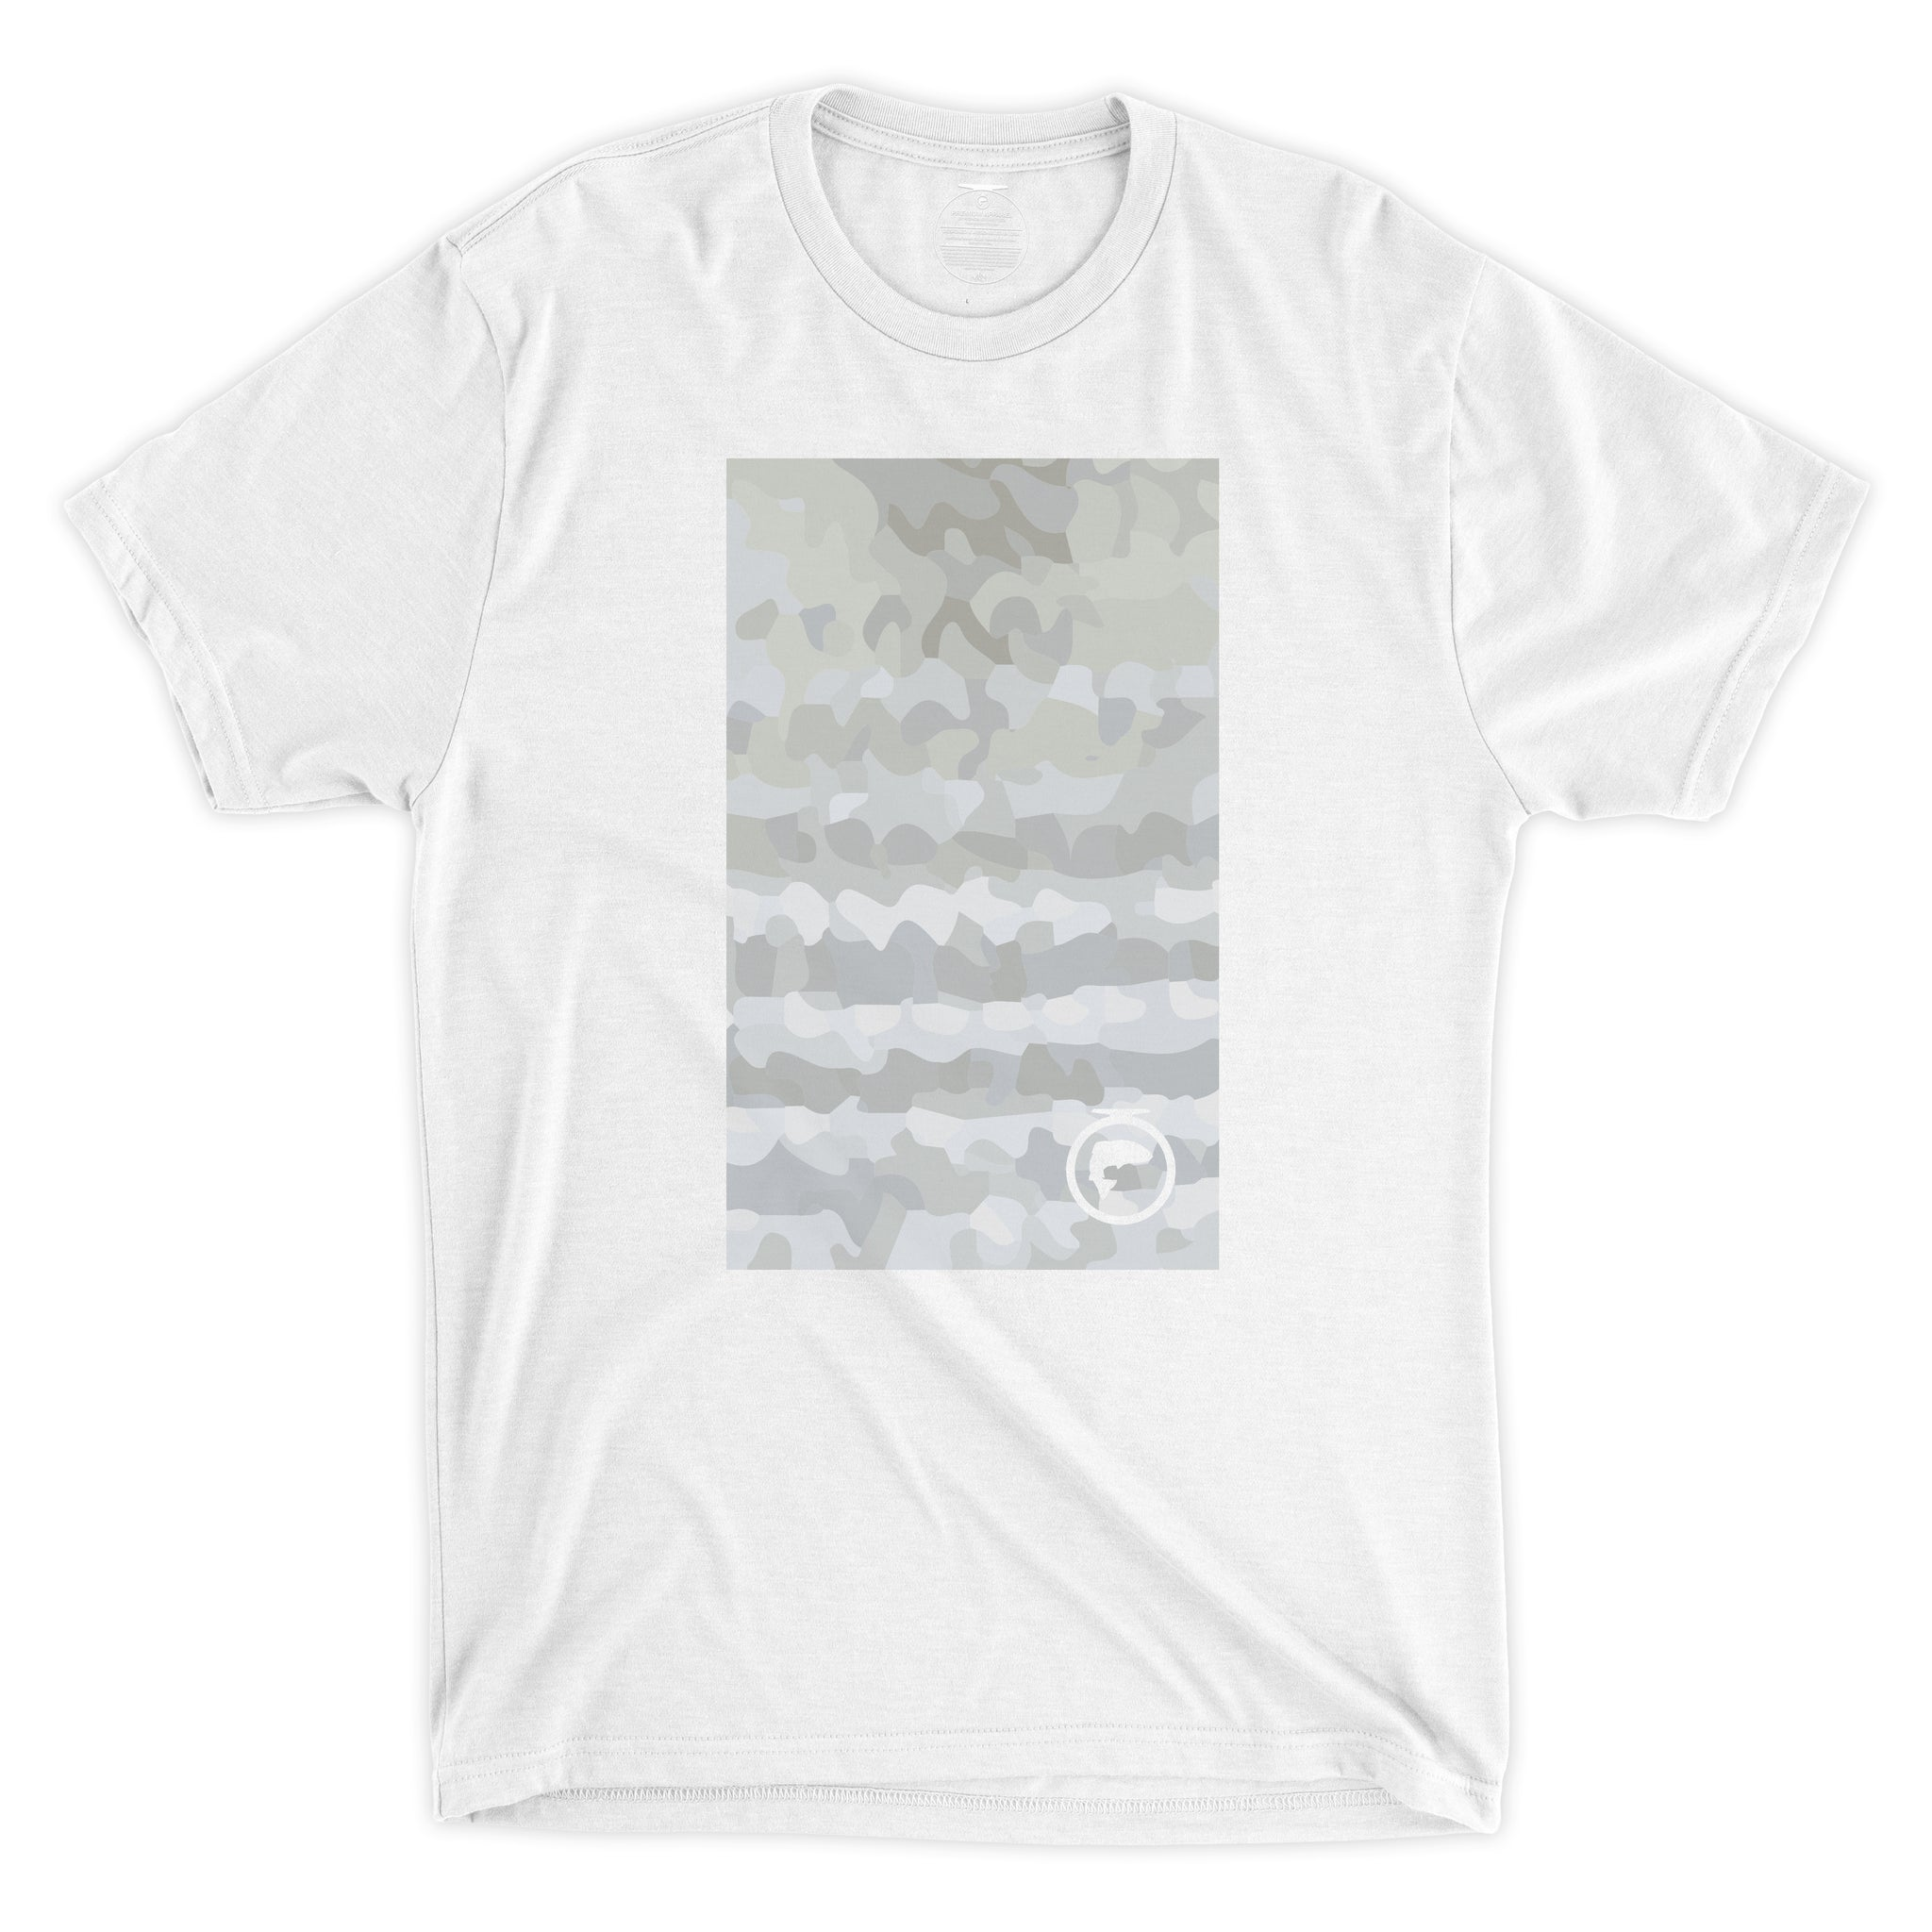 Skin Art Tee - Bonefish